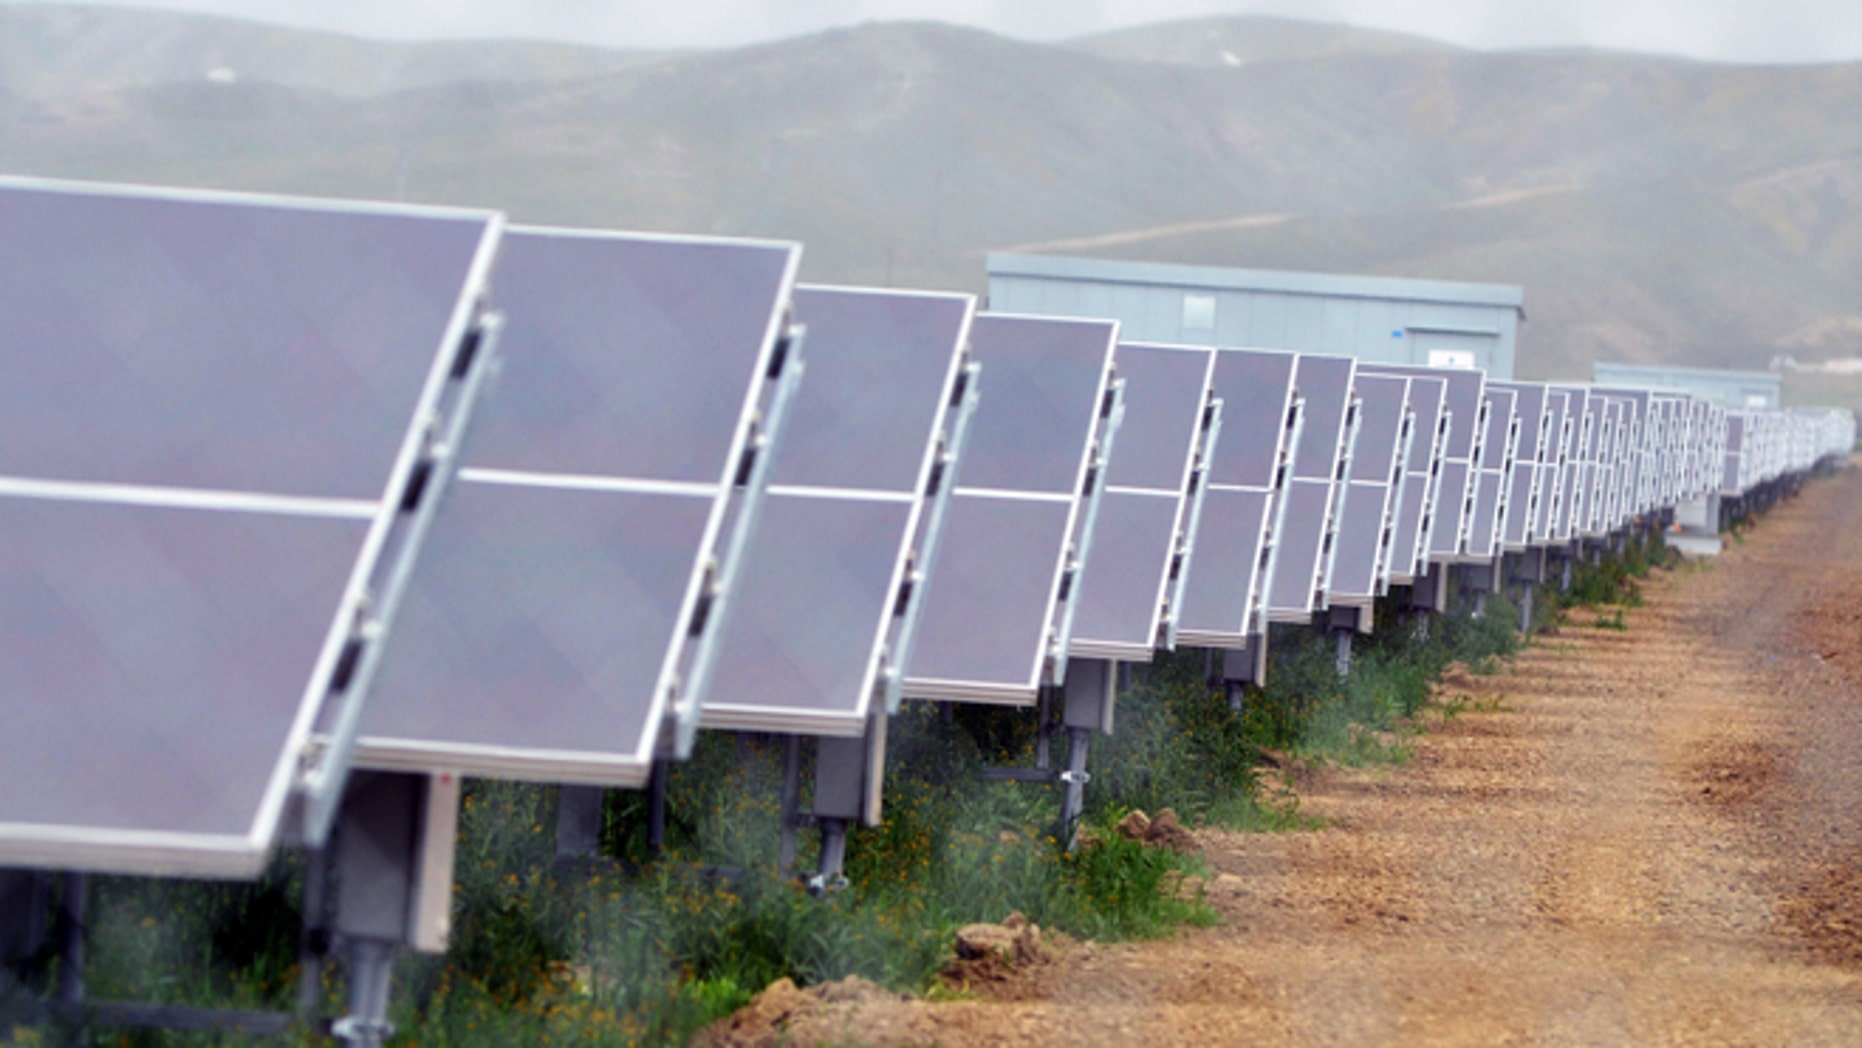 Aug. 3, 2011: In this file photo, solar panels are seen at the NRG Solar and Eurus Energy America Corp.s 45-megawatt solar farm in Avenal, Calif.